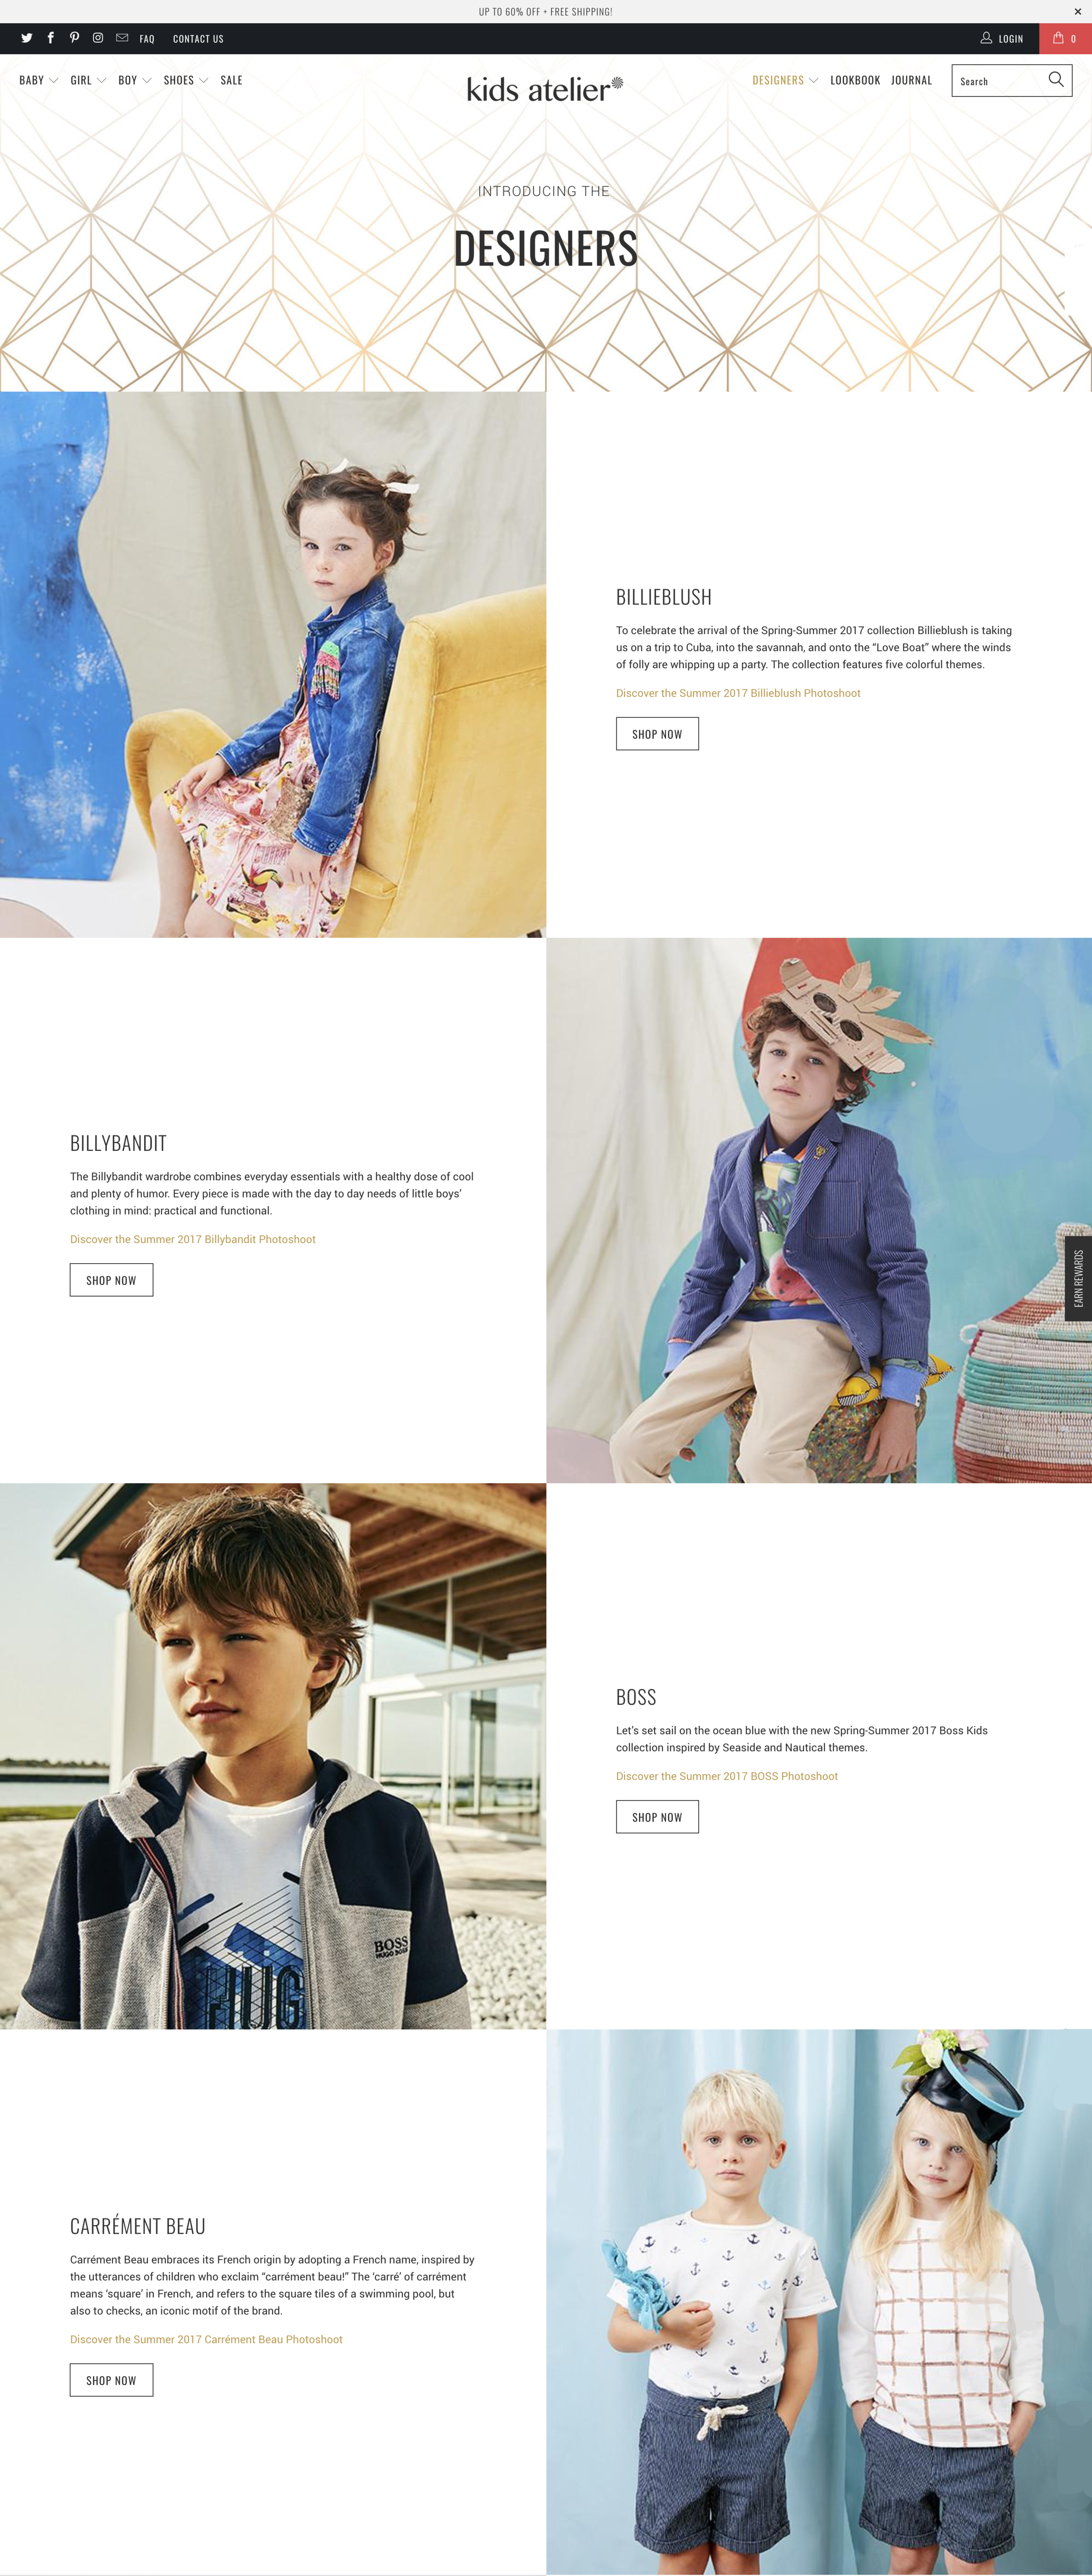 Designers Page - To highlight the curated collection of these international brands across the spectrum of styles from creative bohemian to classic chic.